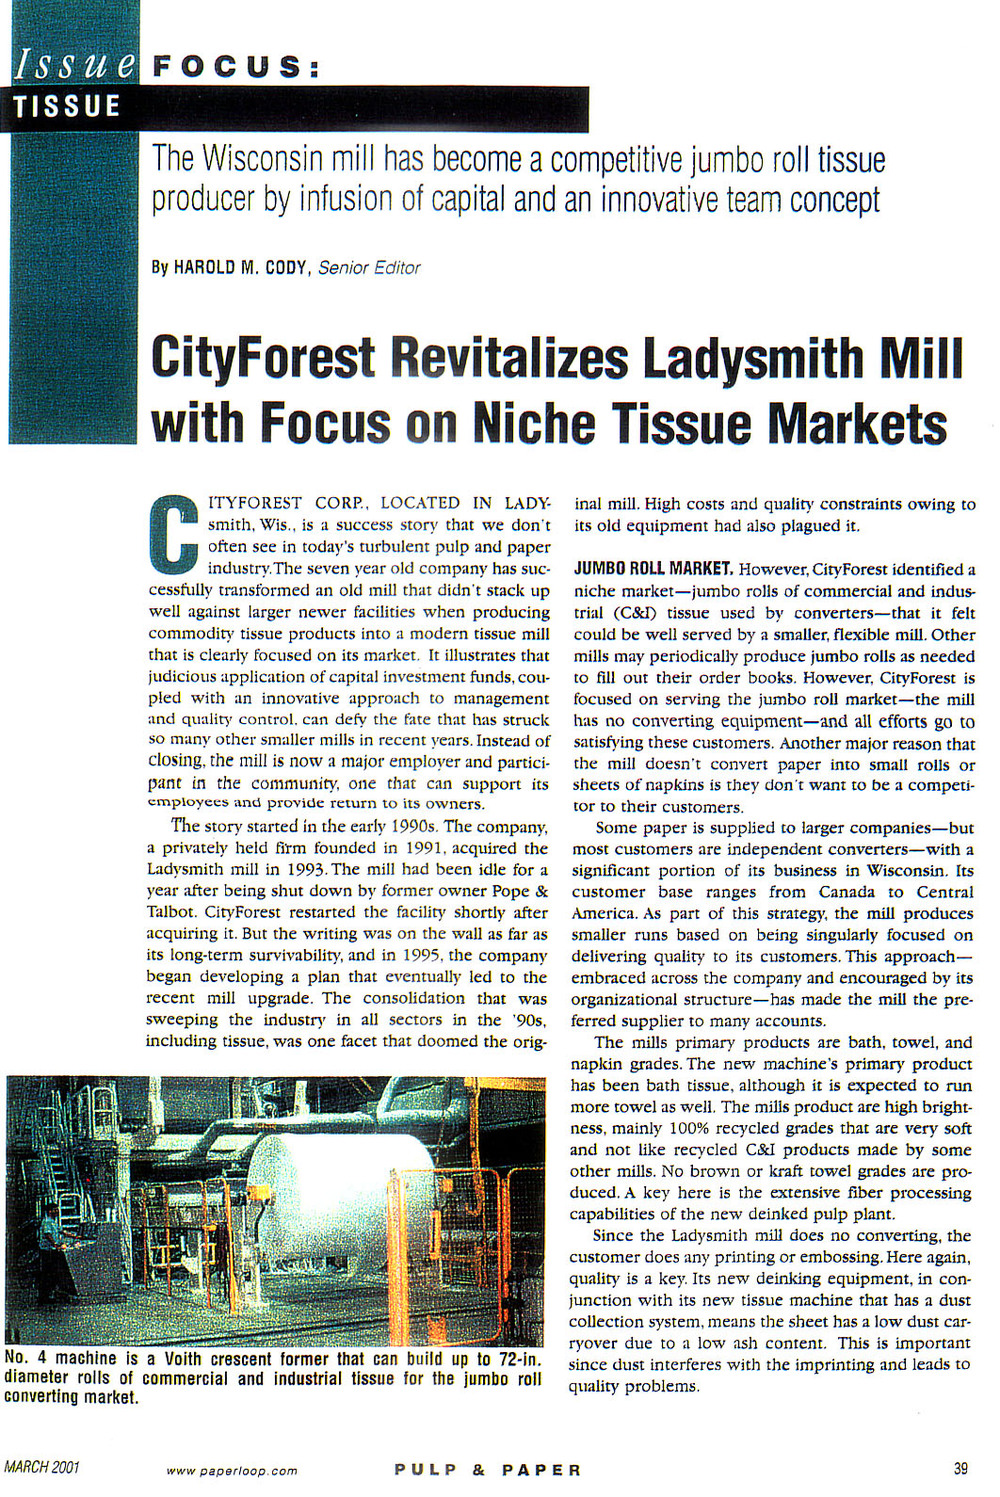 pulp & paper-march 2001-city forest revitalizes ladysmith mill with focus on niche tissue markets  page 1.jpg